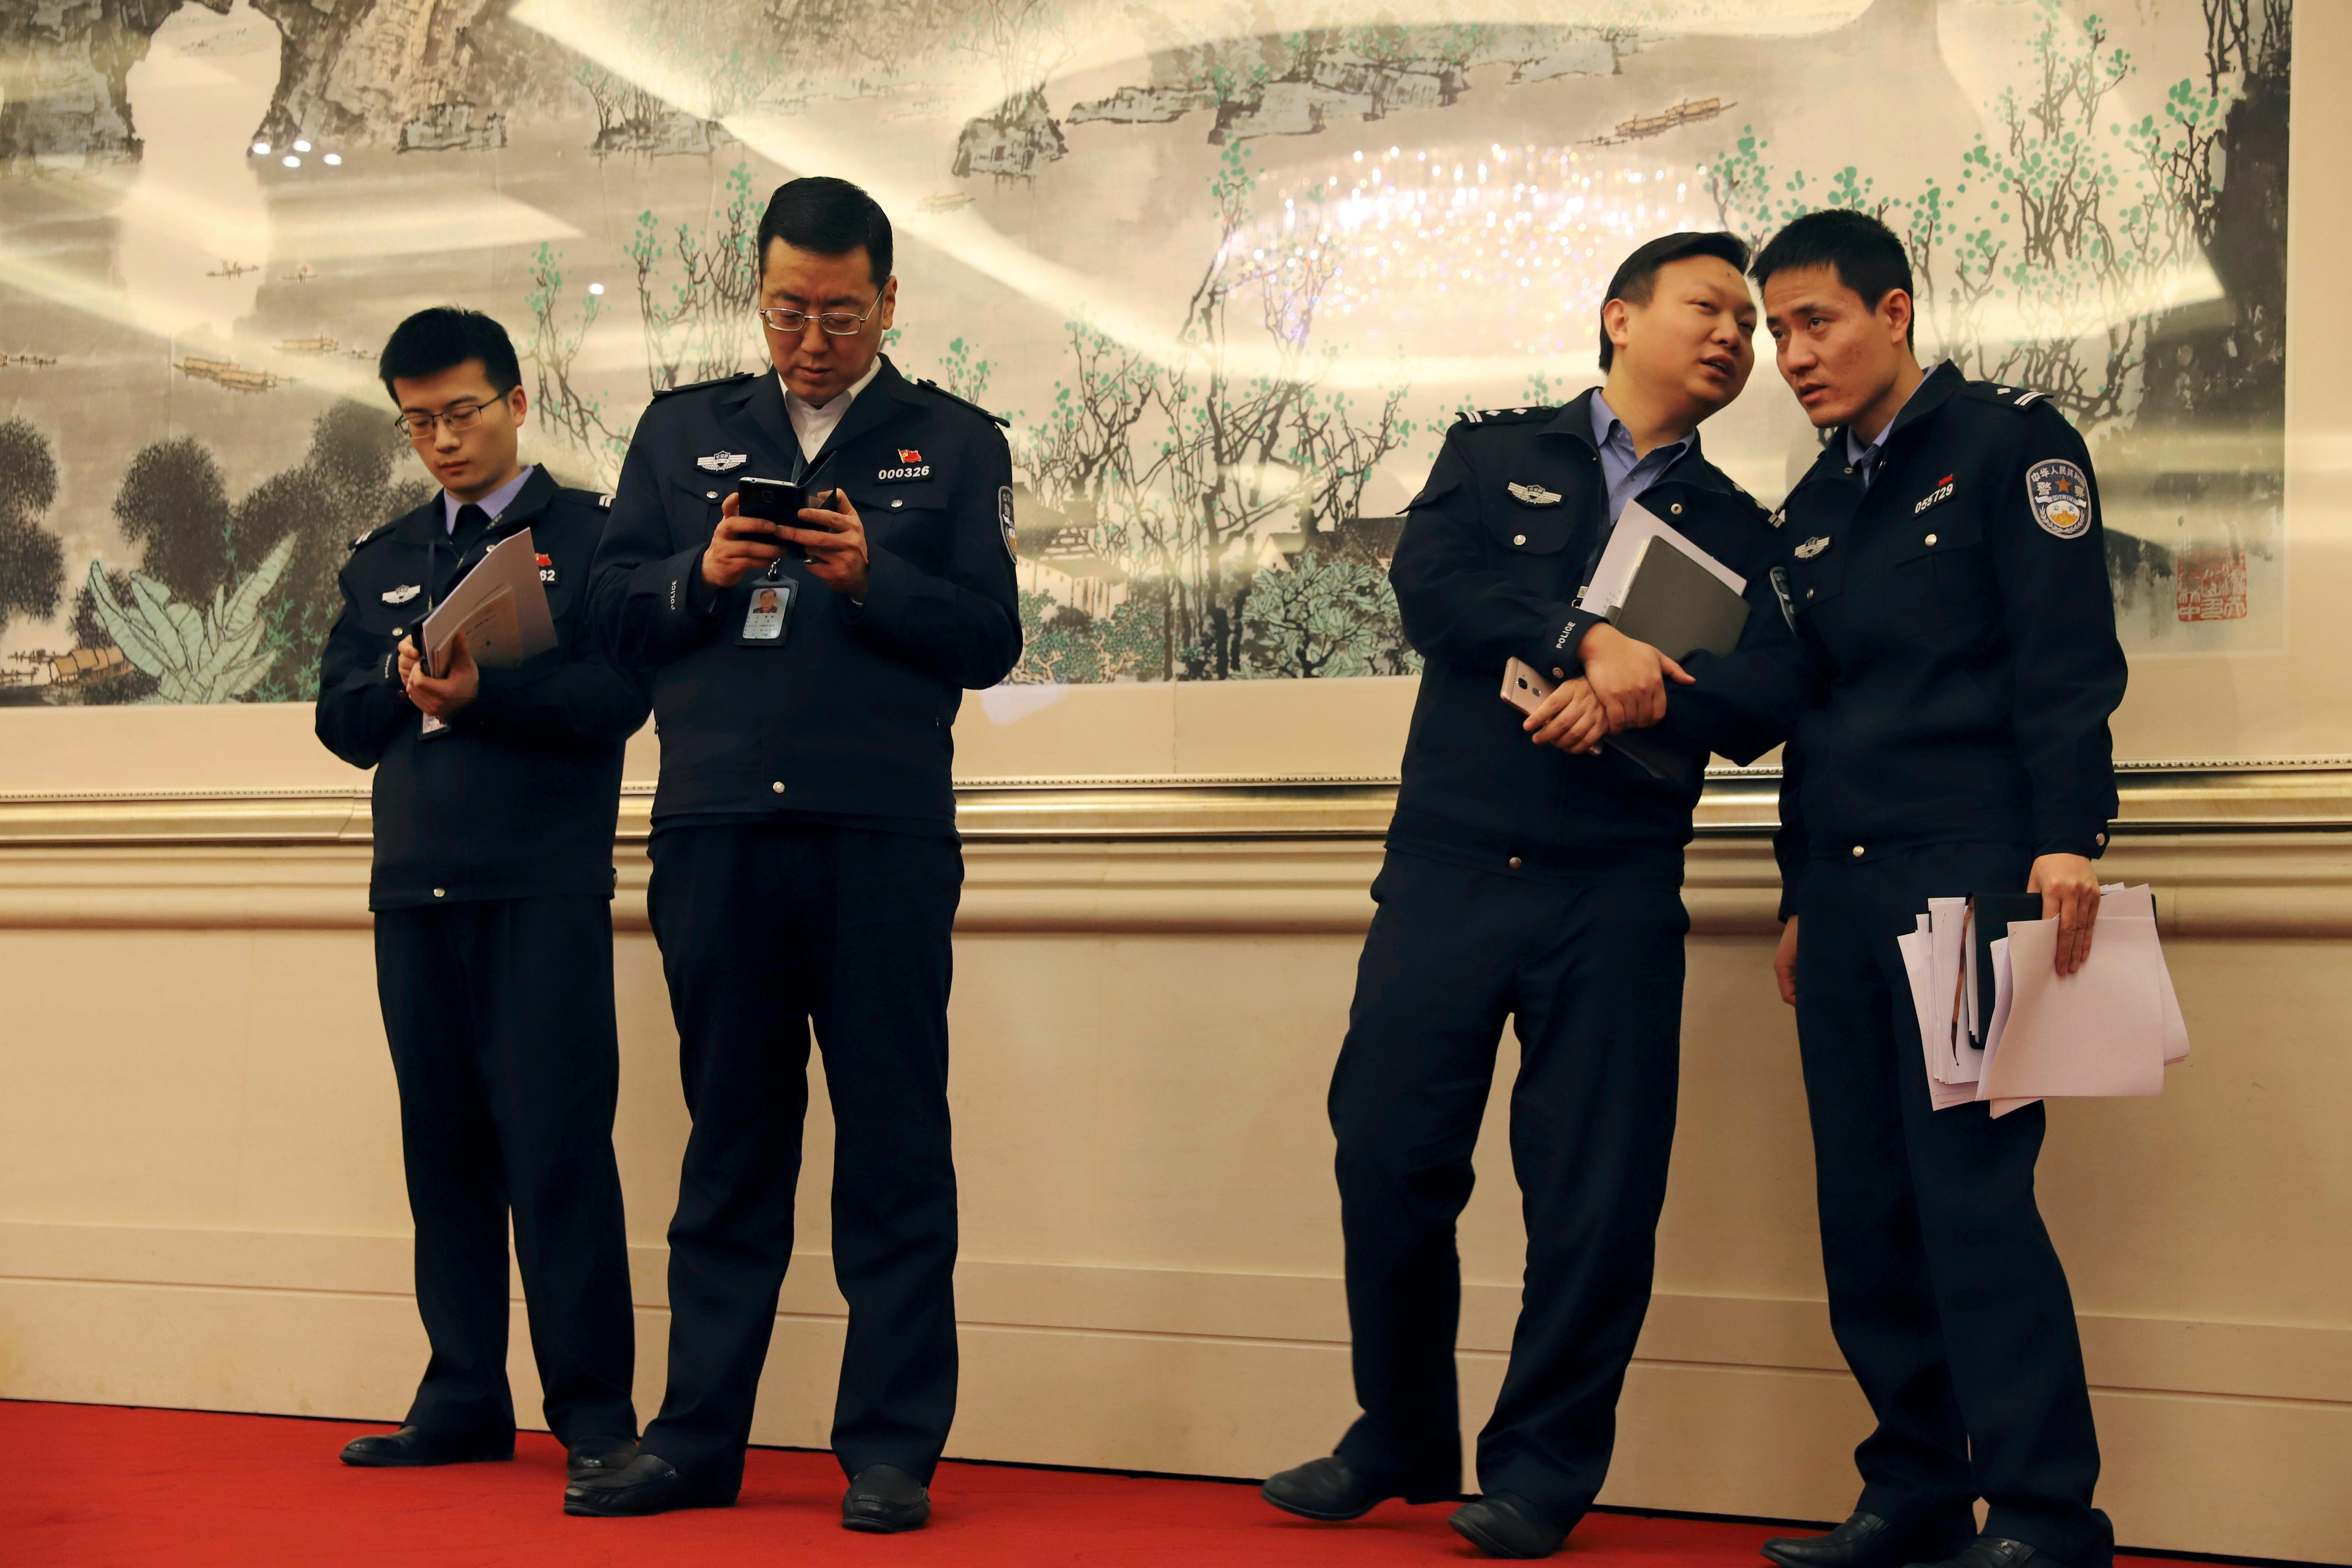 Chinese police gather during a press conference on held in Beijing, China, Thursday, Dec. 28, 2017. Yu Haibin of the China National Narcotics Control Commissionsaid Thursday there was little evidence showing China was the source of much of the chemicals used in the production of the powerful opioid fentanyl. (AP Photo/Ng Han Guan)